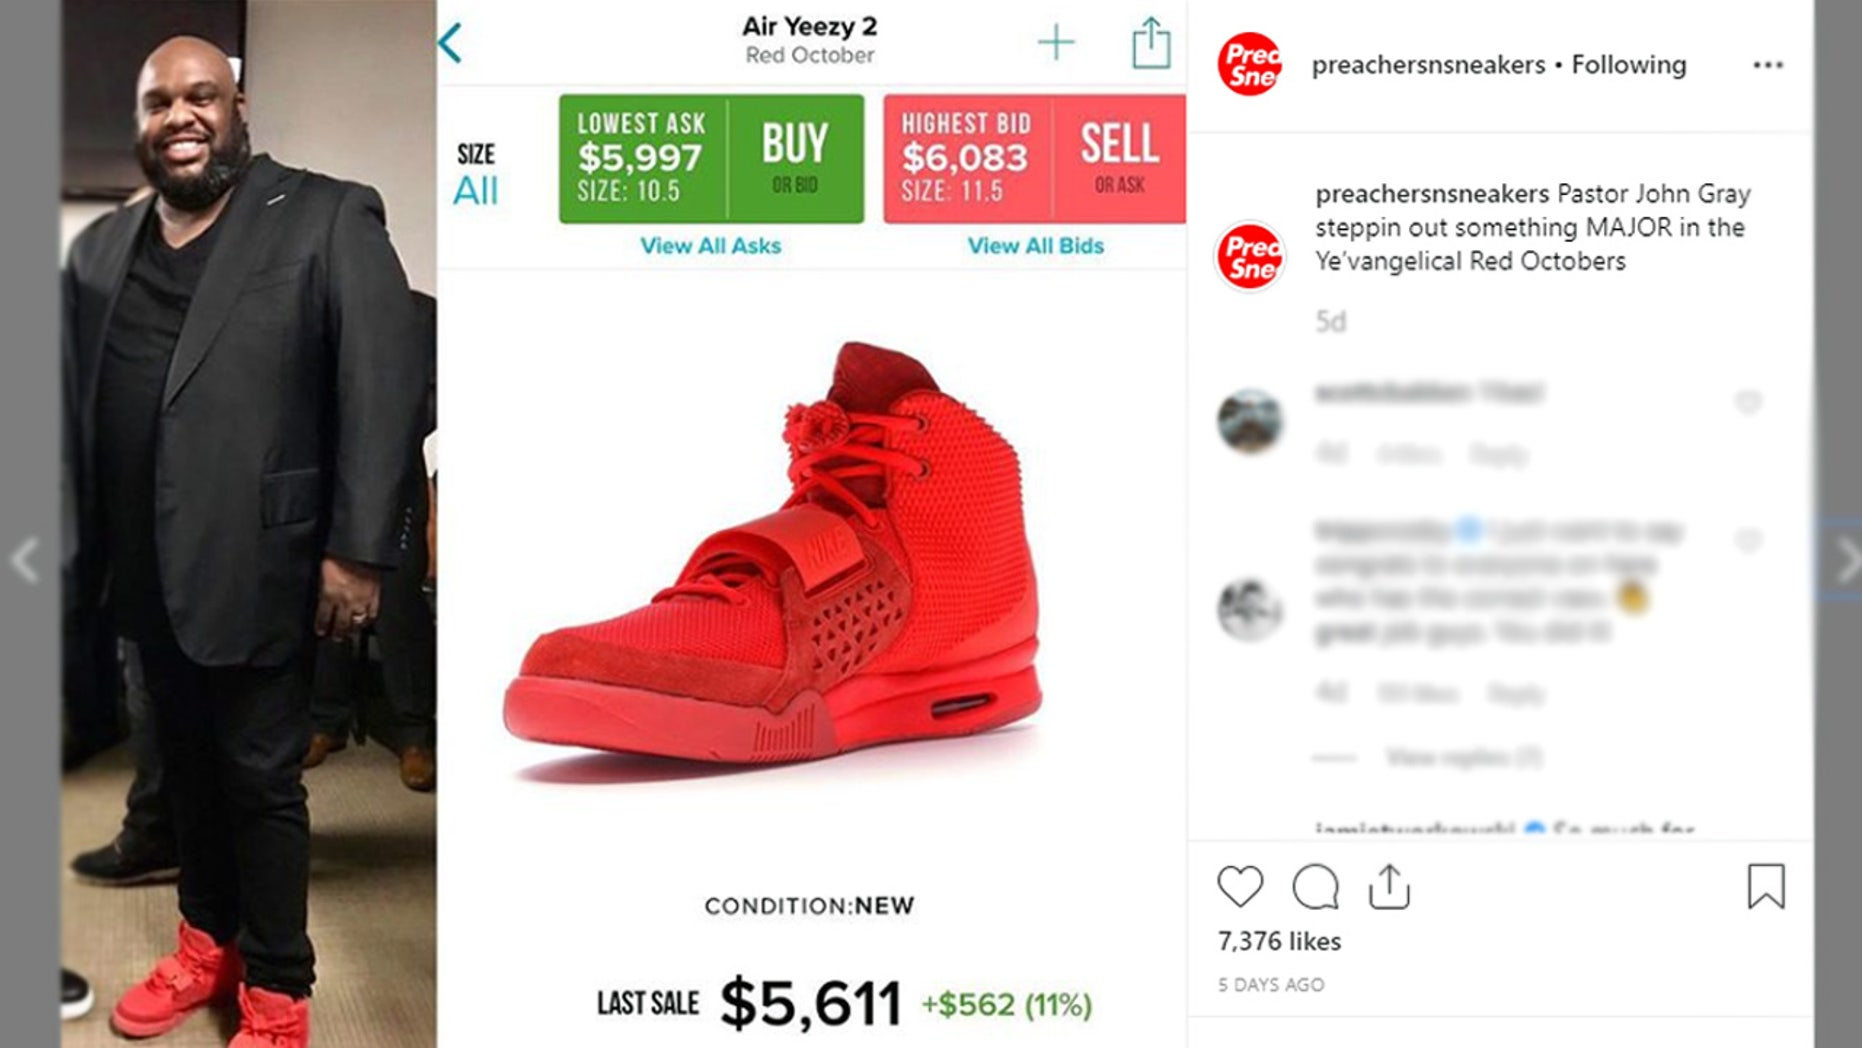 The Instagram account @PreachersNSneakers went viral for calling out high profile pastors for wearing costly kicks.